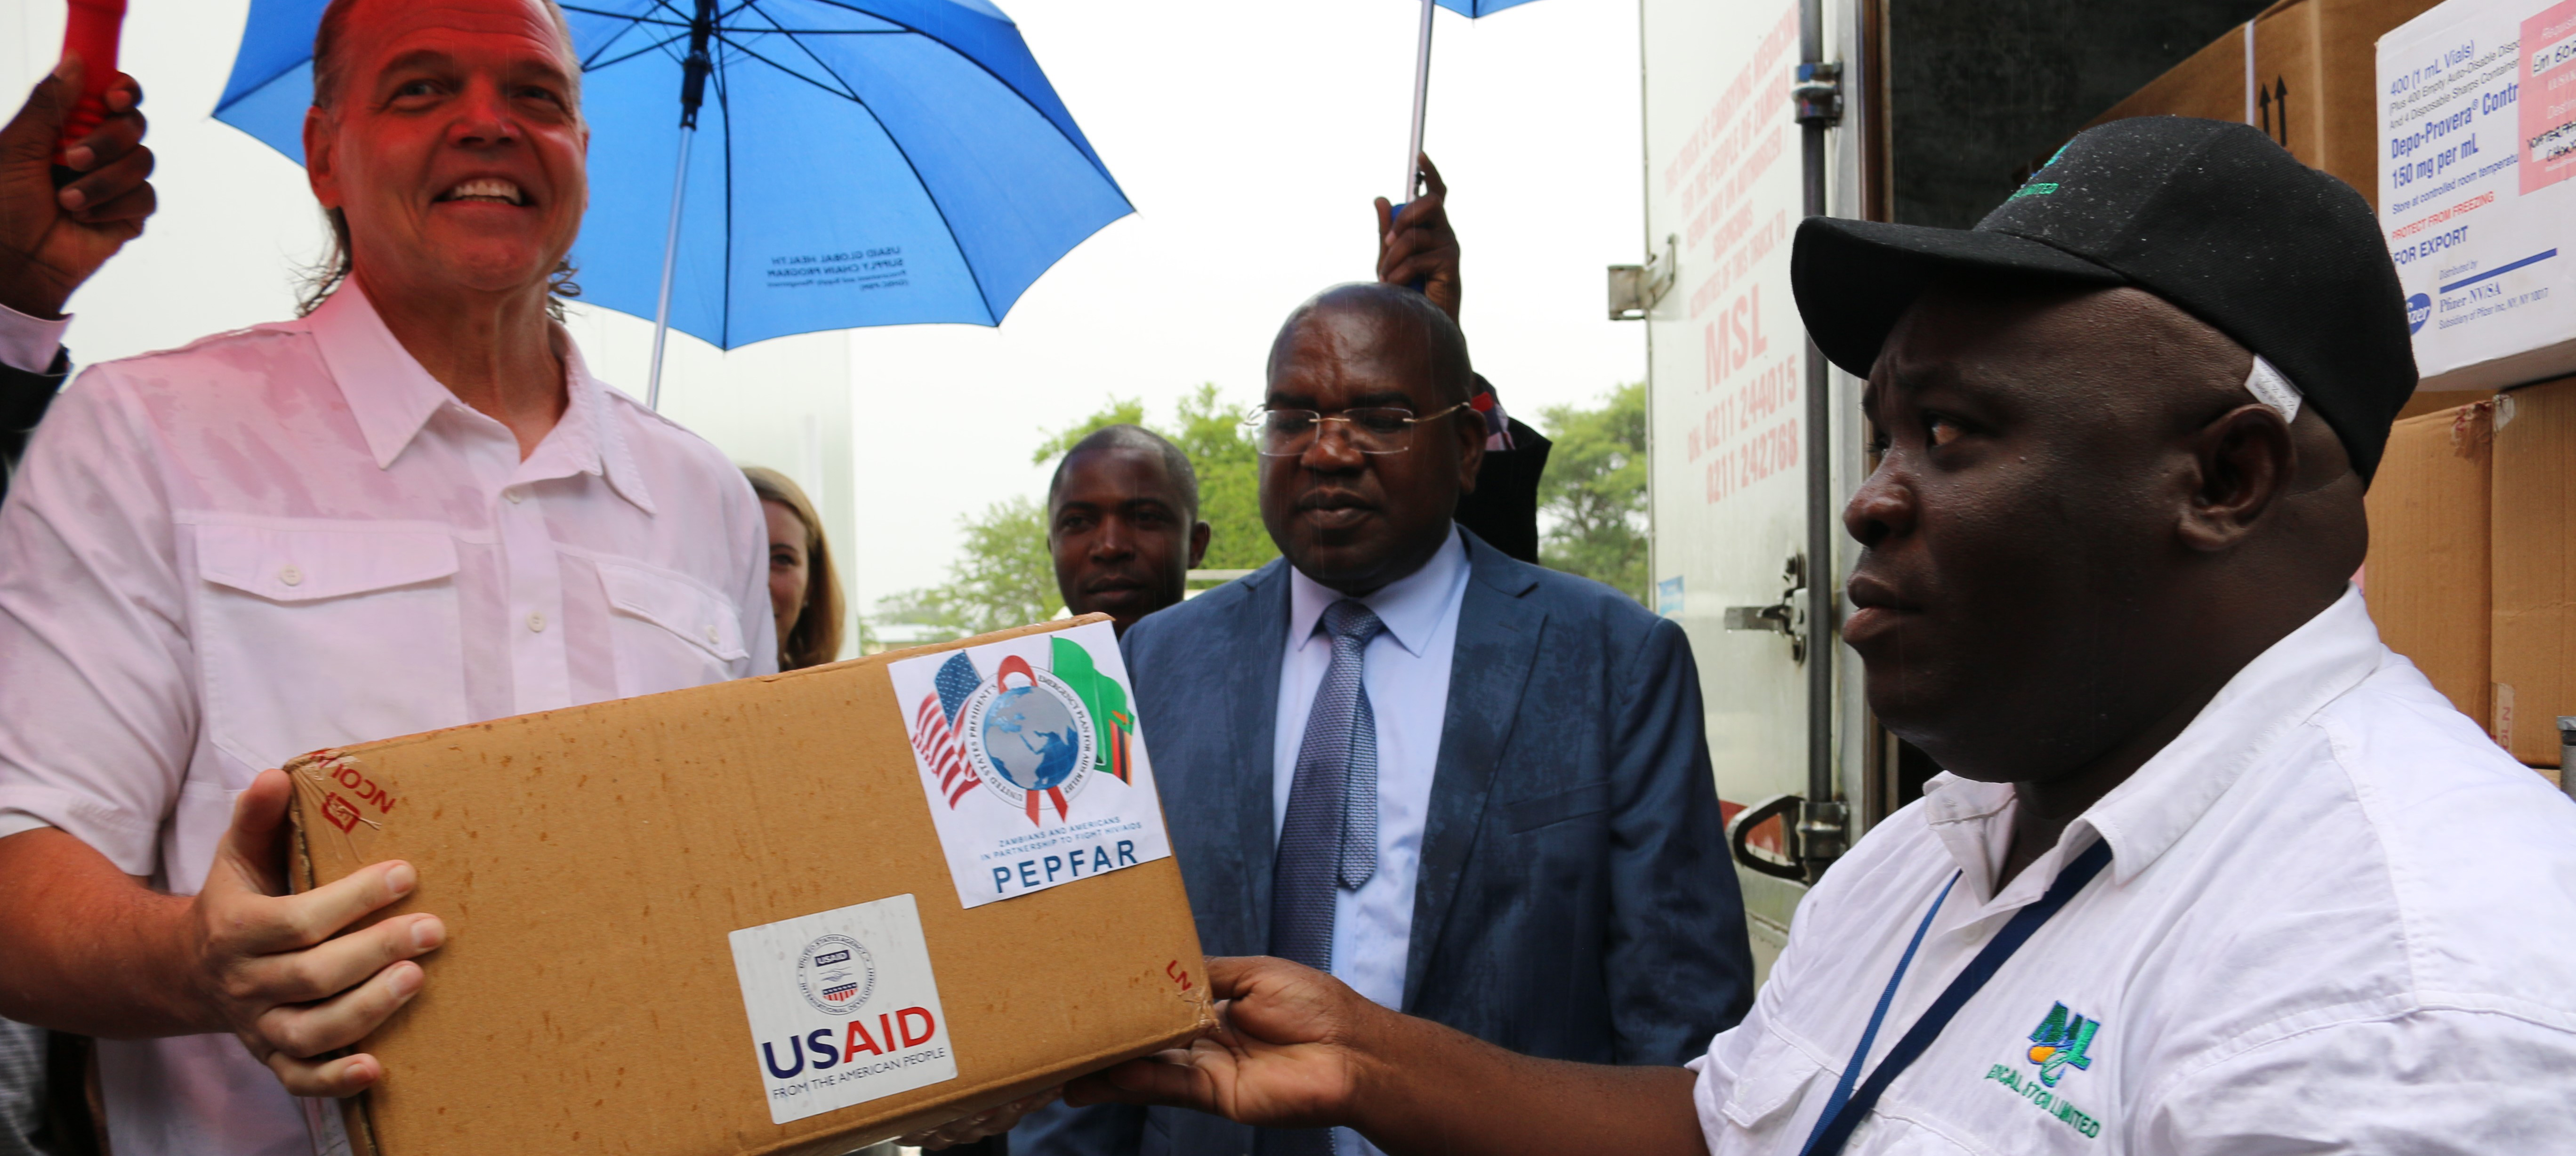 Ambassador Daniel Foote offloads a box of health commodities to be moved into a pre-fabricated storage unit as Zambian Minister of Health Chilufya and MSL Managing Director Chikuta Mbewe look on.